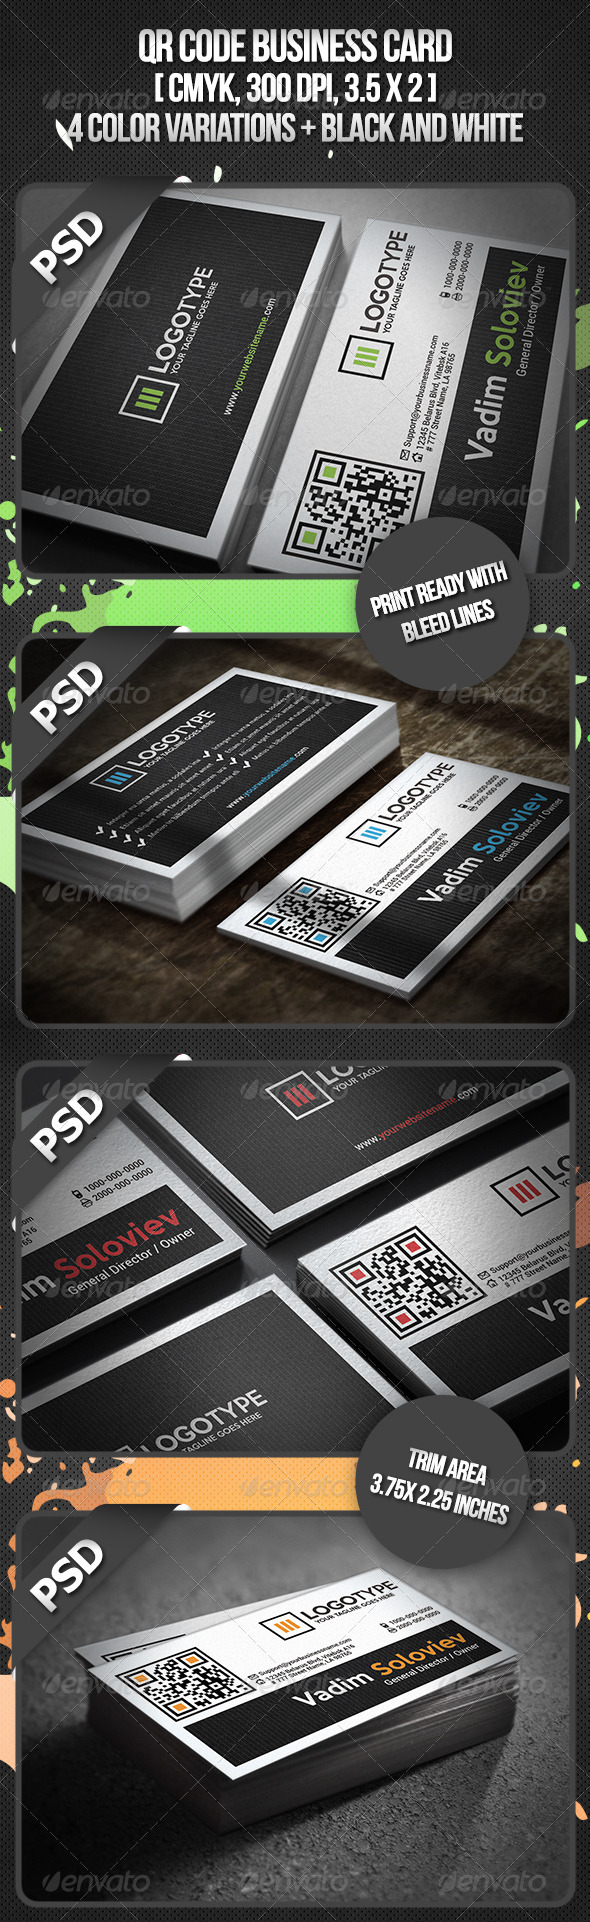 GraphicRiver QR Code Business Card 3361572